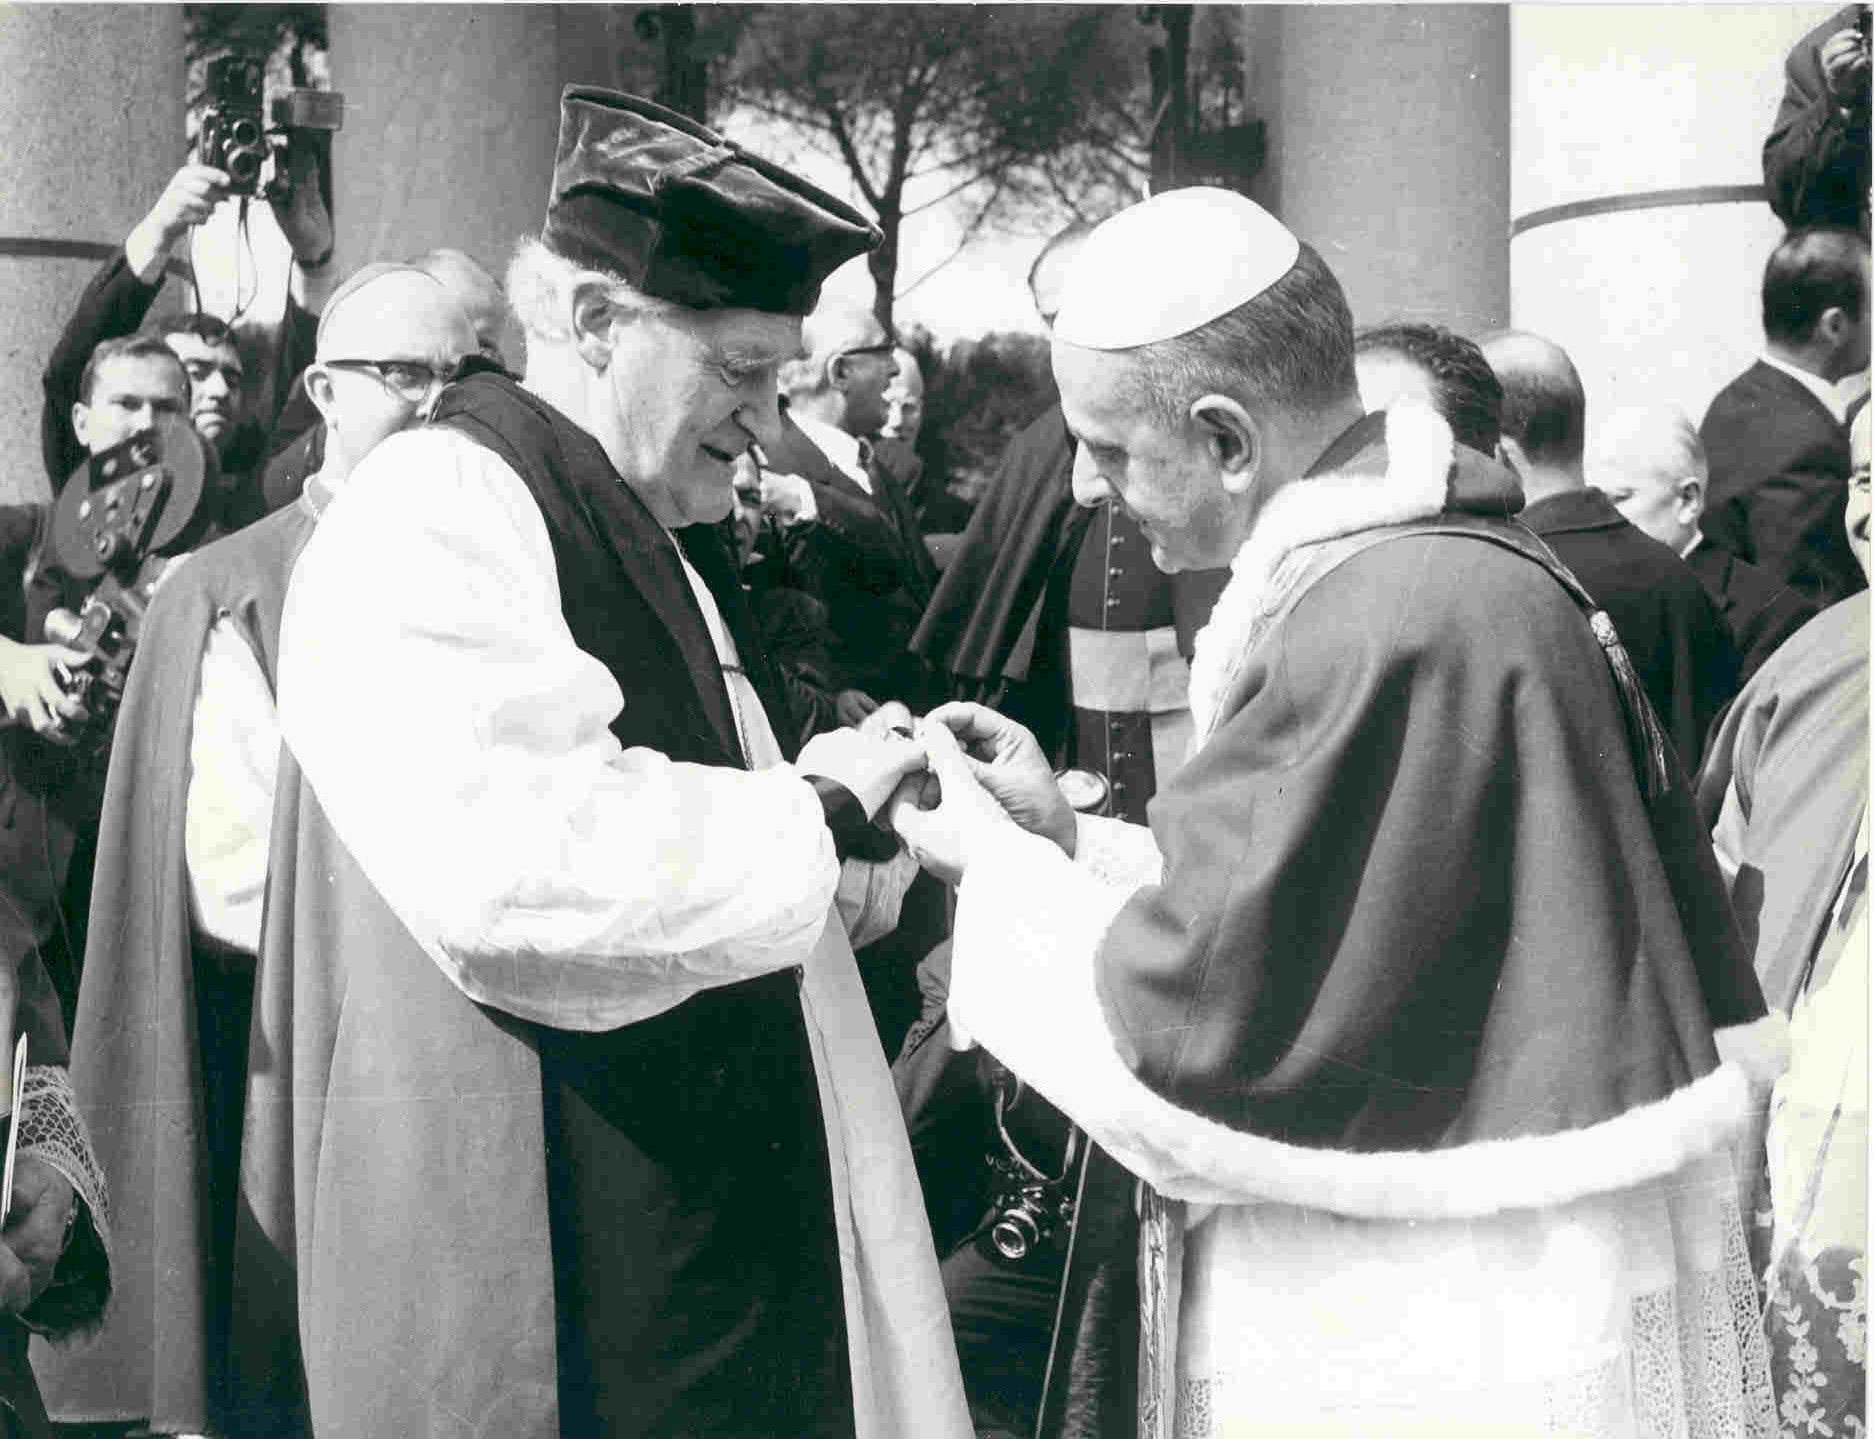 Pope Paul VI places his episcopal ring on the finger of the Anglican Archbishop of Canterbury Michael Ramsey